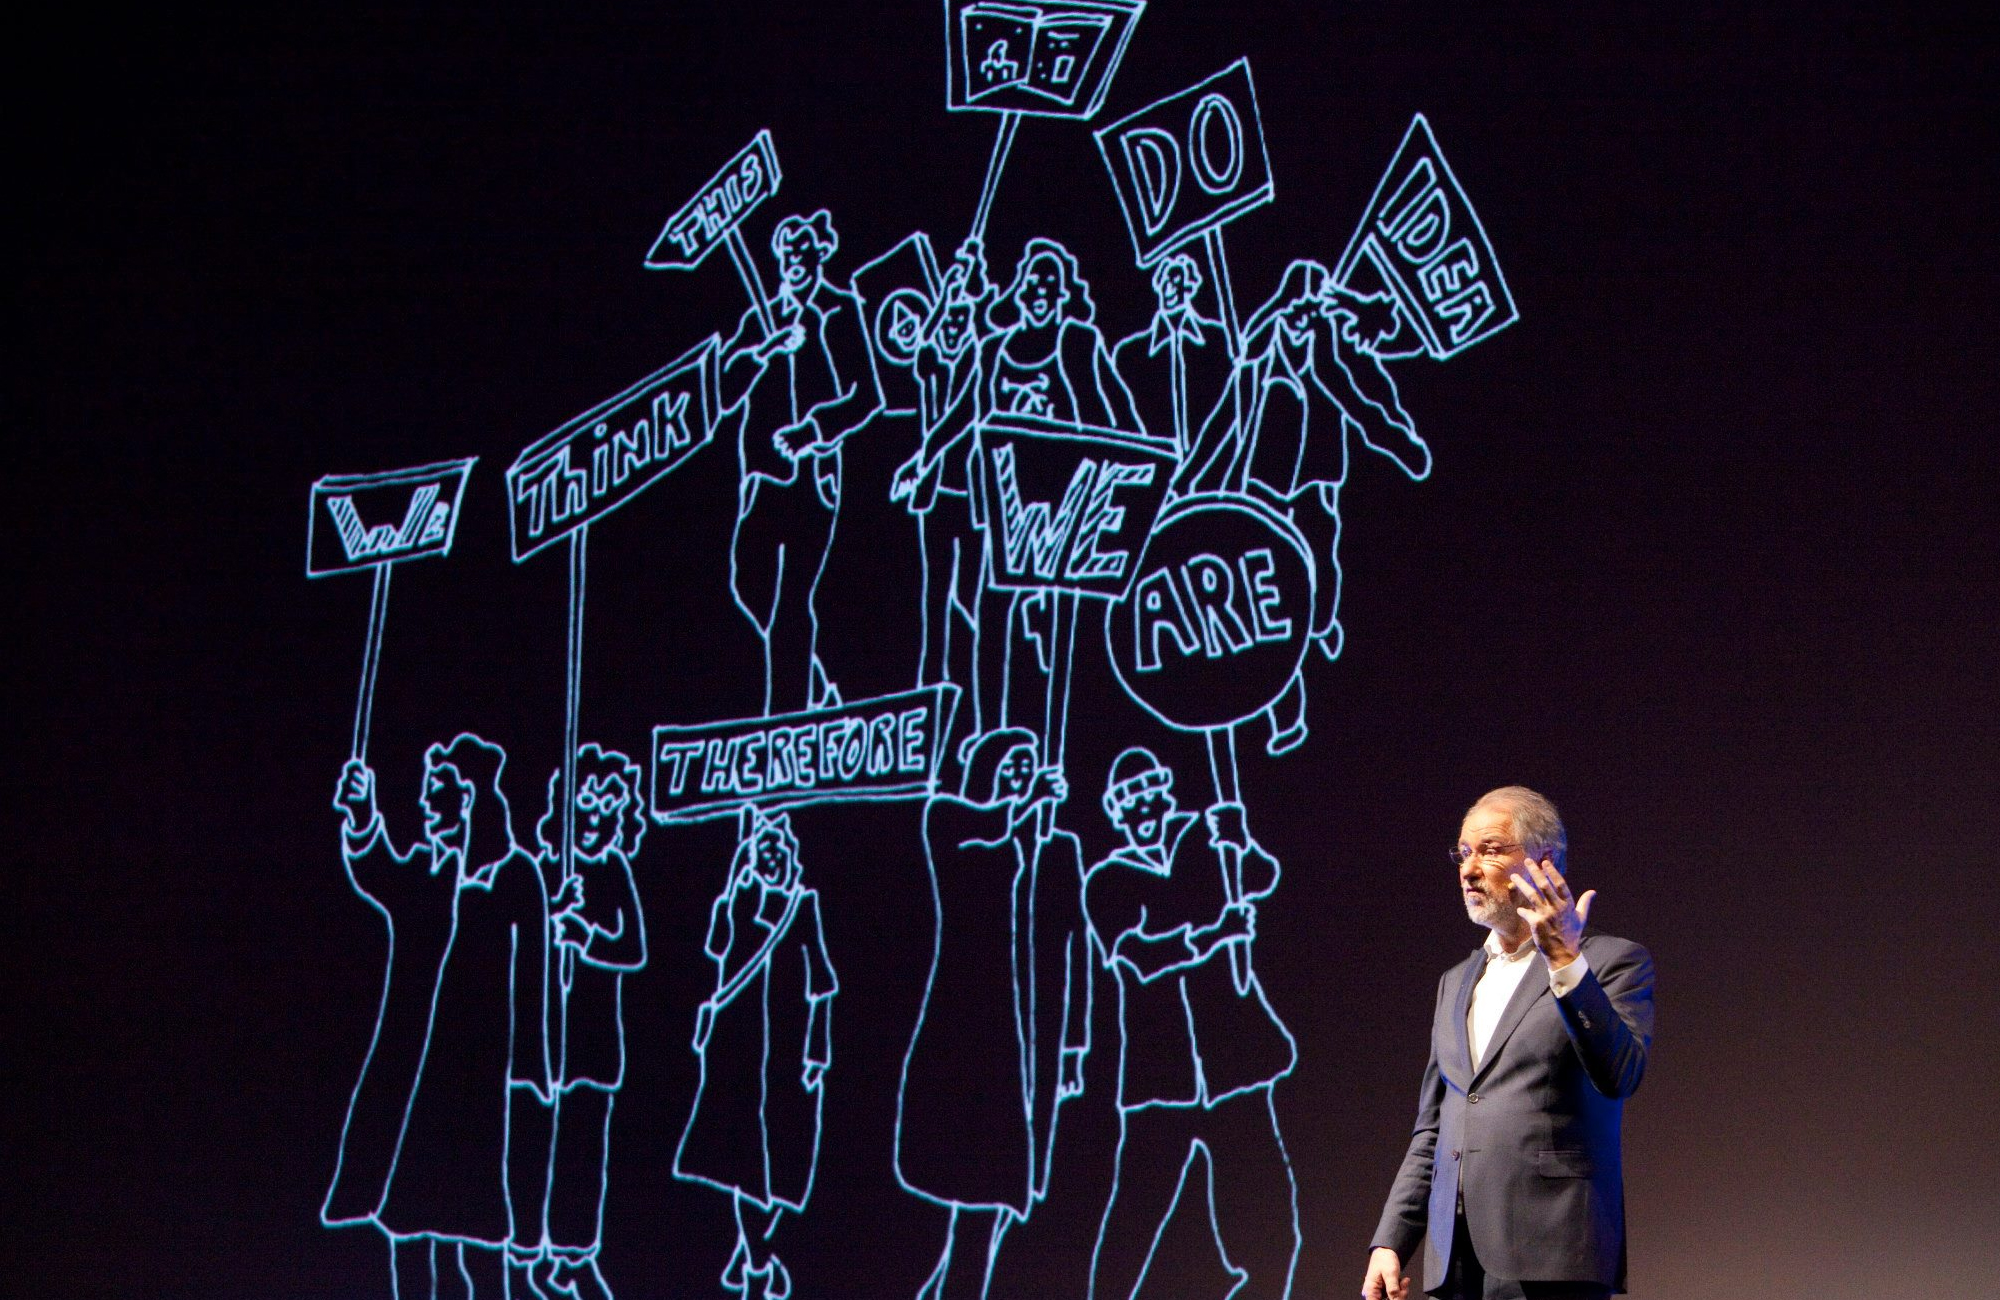 TEDxZwolle